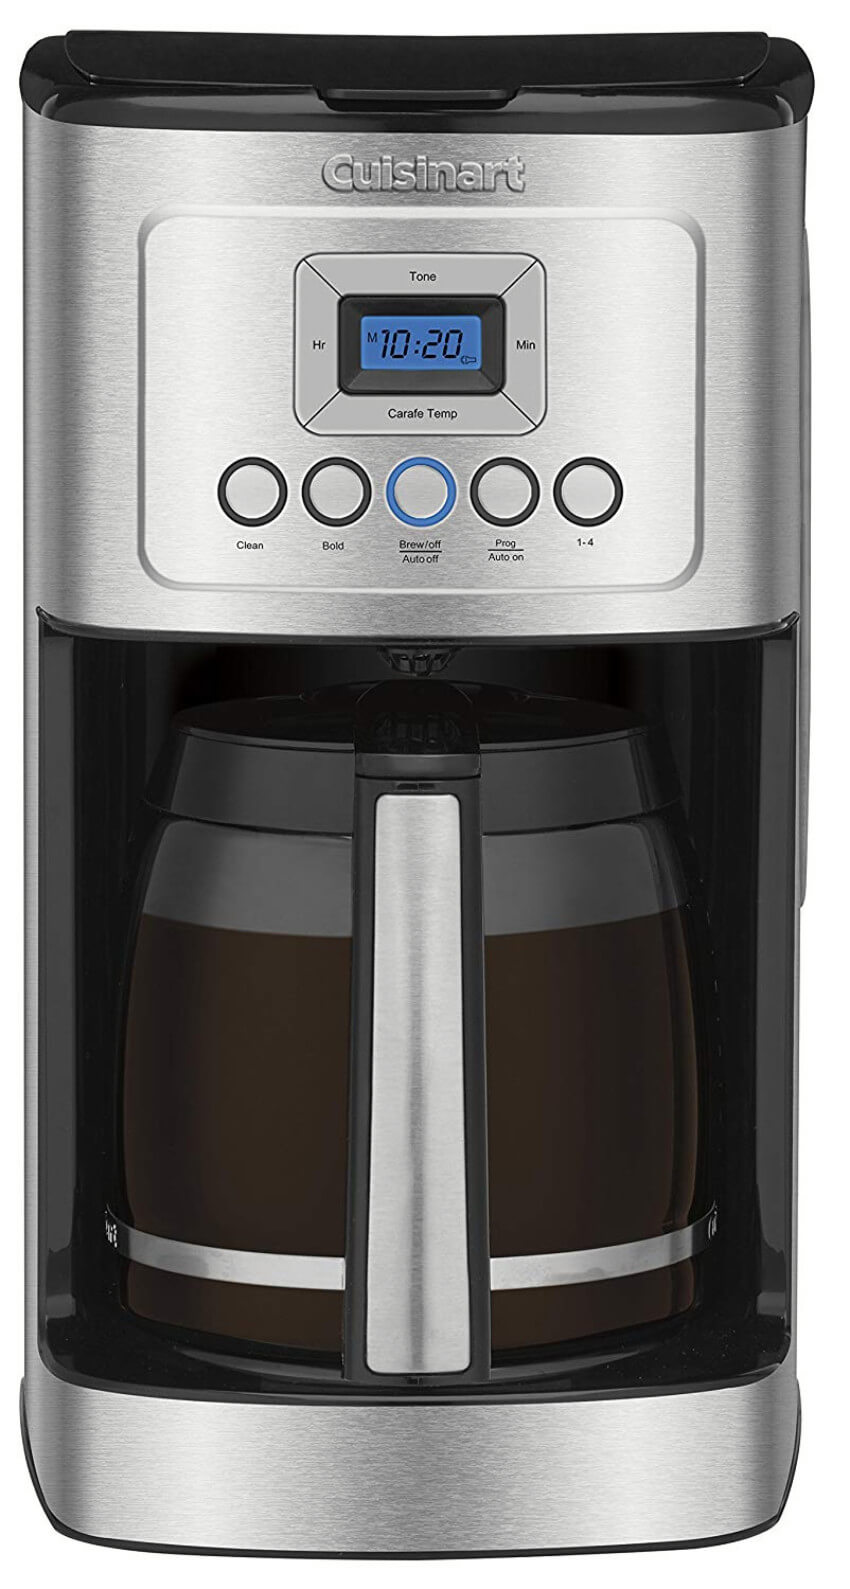 Get this coffee maker at Amazon.